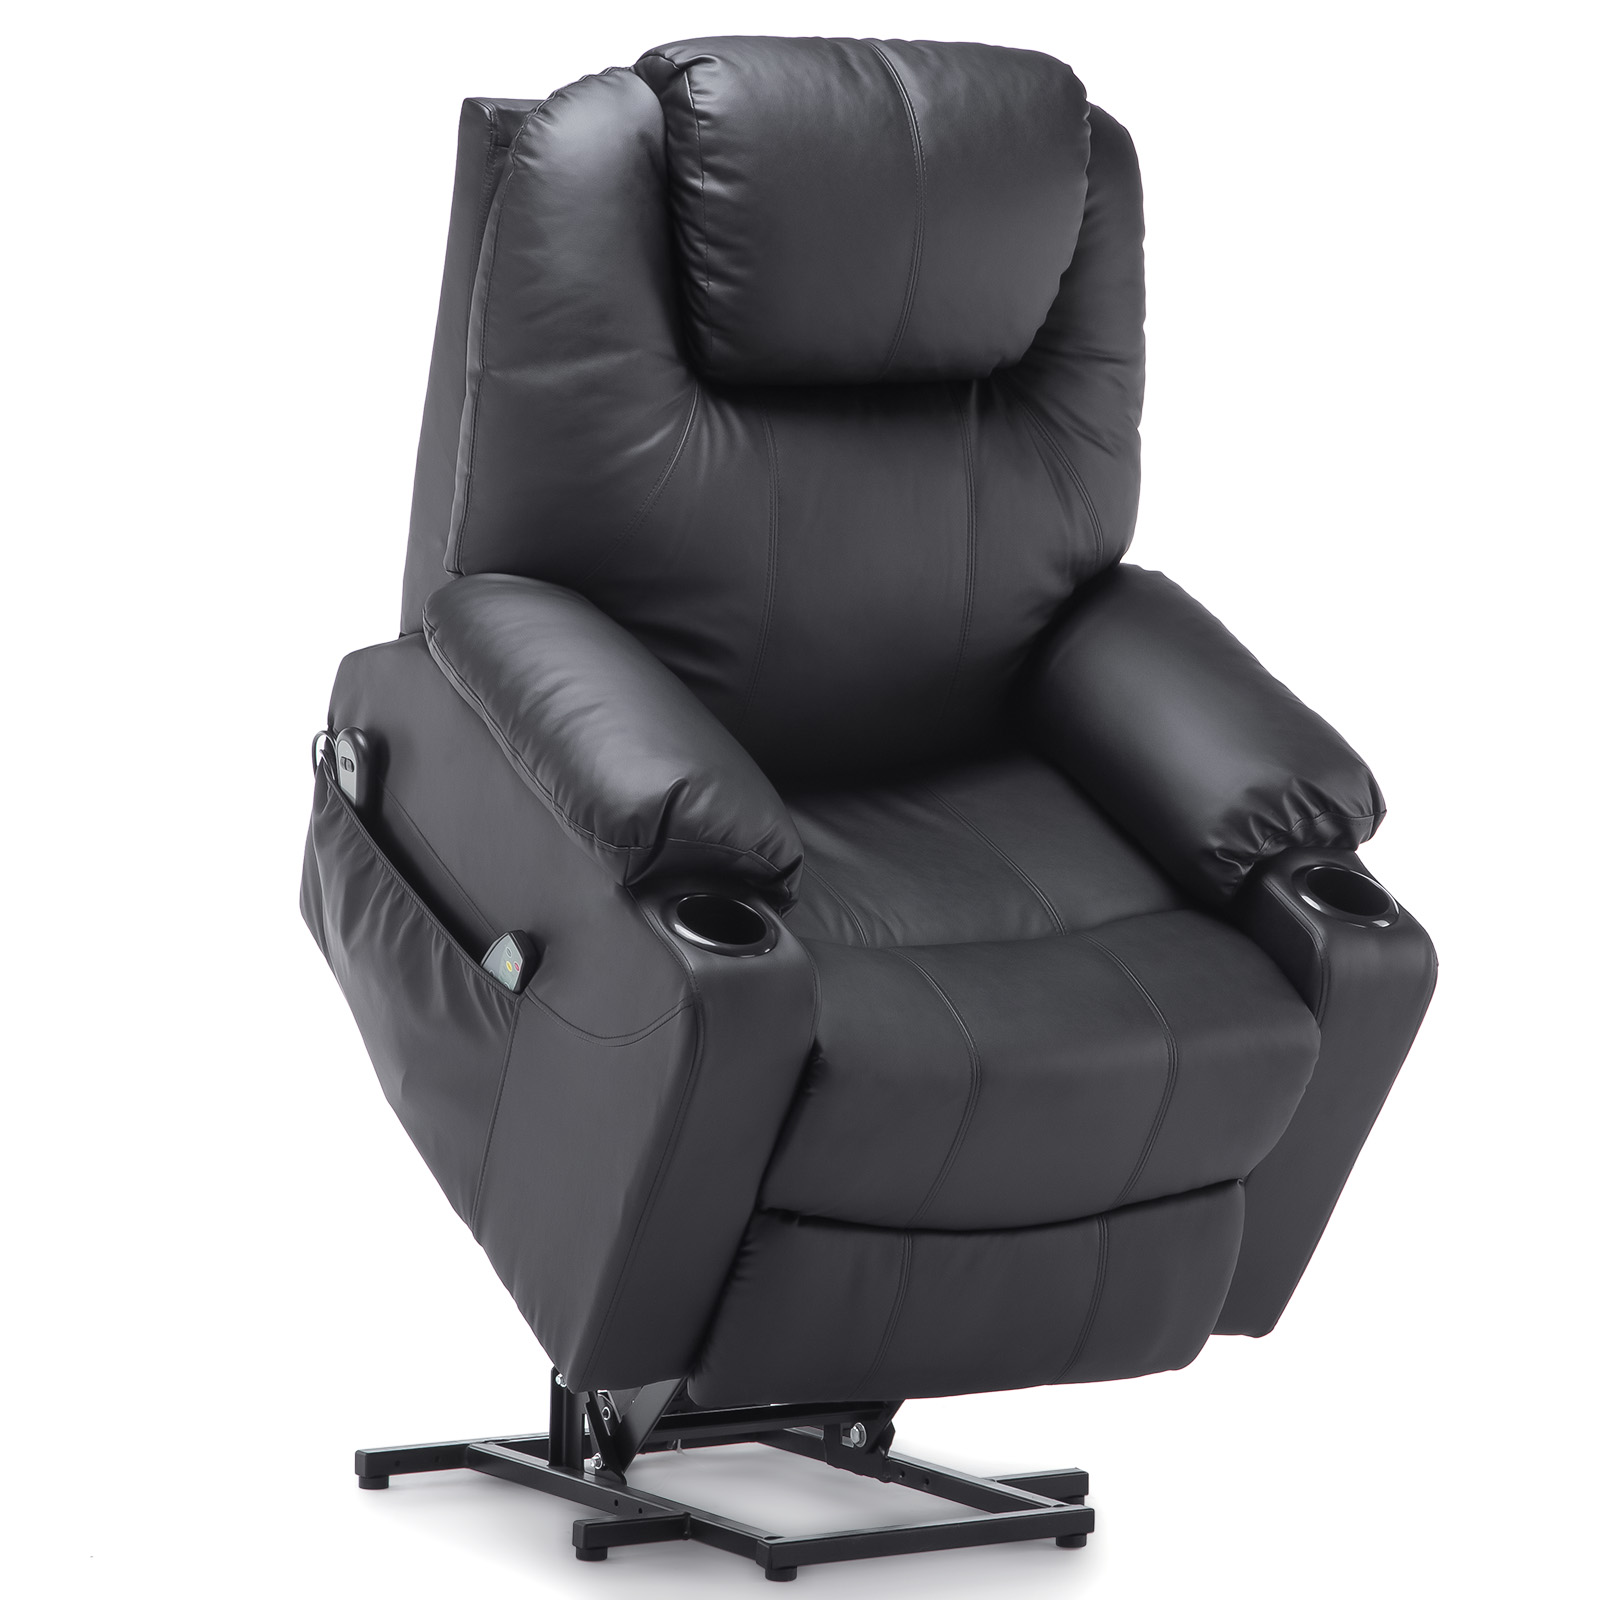 2021 Upgraded Electric Massage Chair Power Lift Recliner Chairs Leisure Soft Sofa Full Body Shiatsu Lounge Armchair for Elderly 8